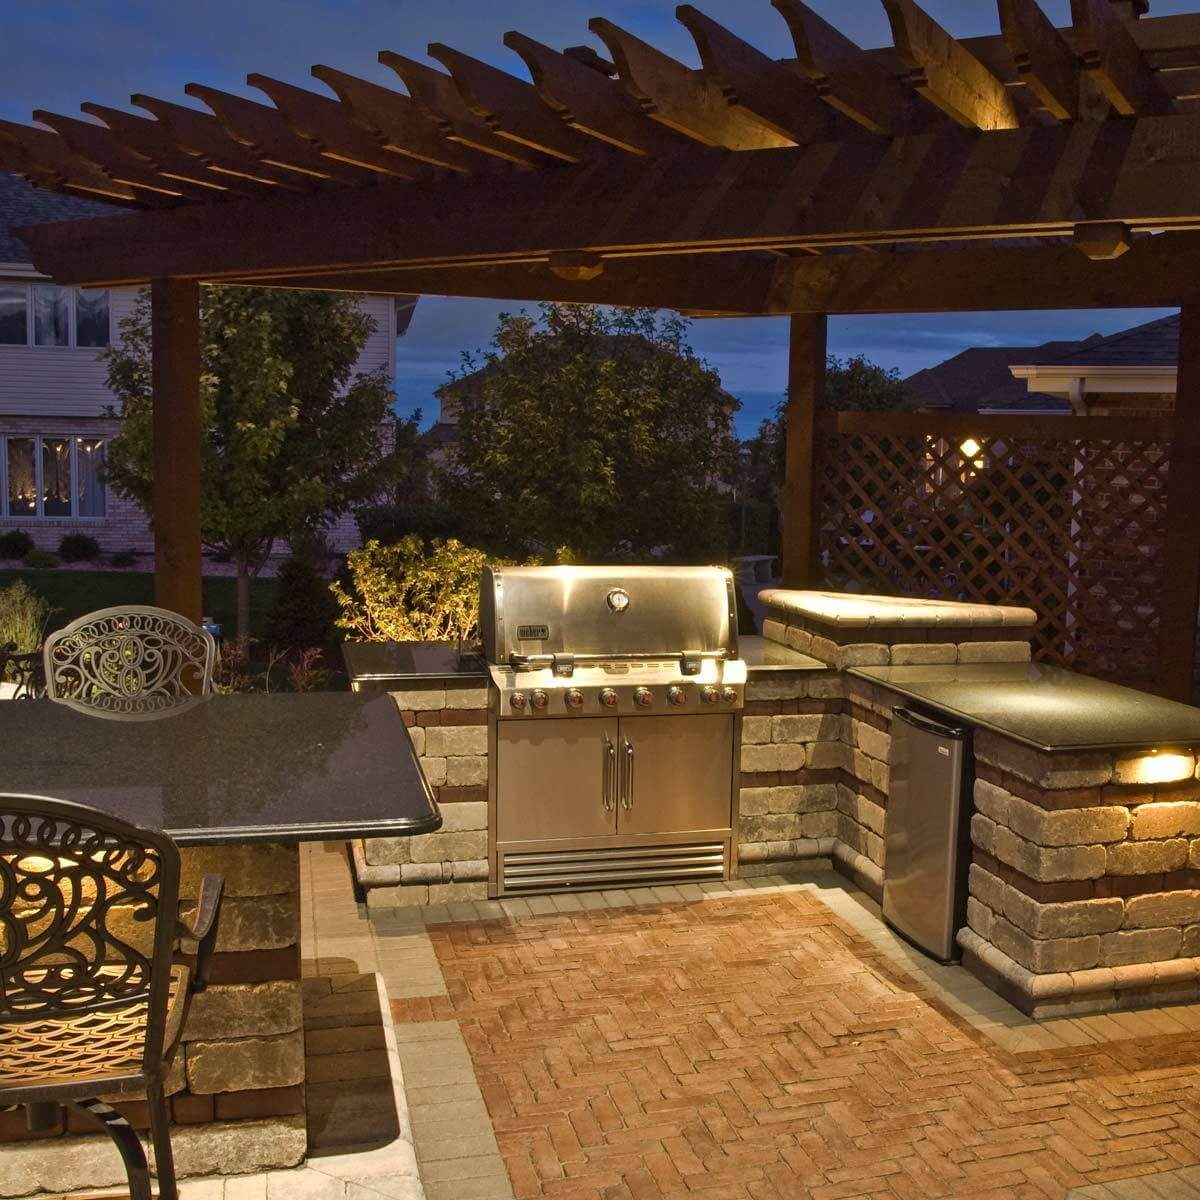 hight resolution of 12 ideas for lighting up your deck the family handyman light bulb wiring backyard kitchen pergola